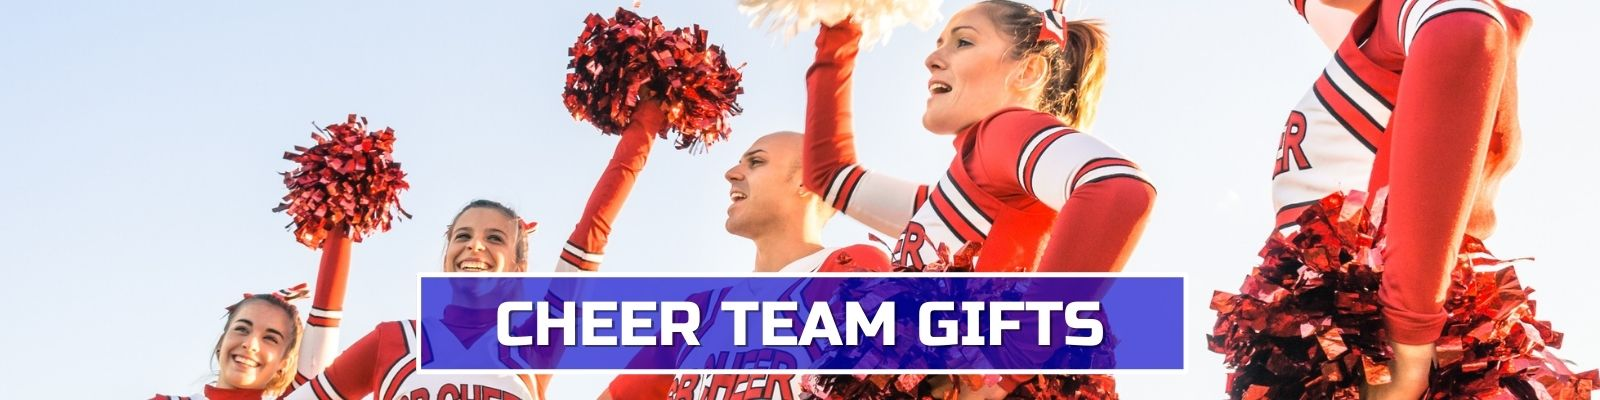 cheer-team-gifts